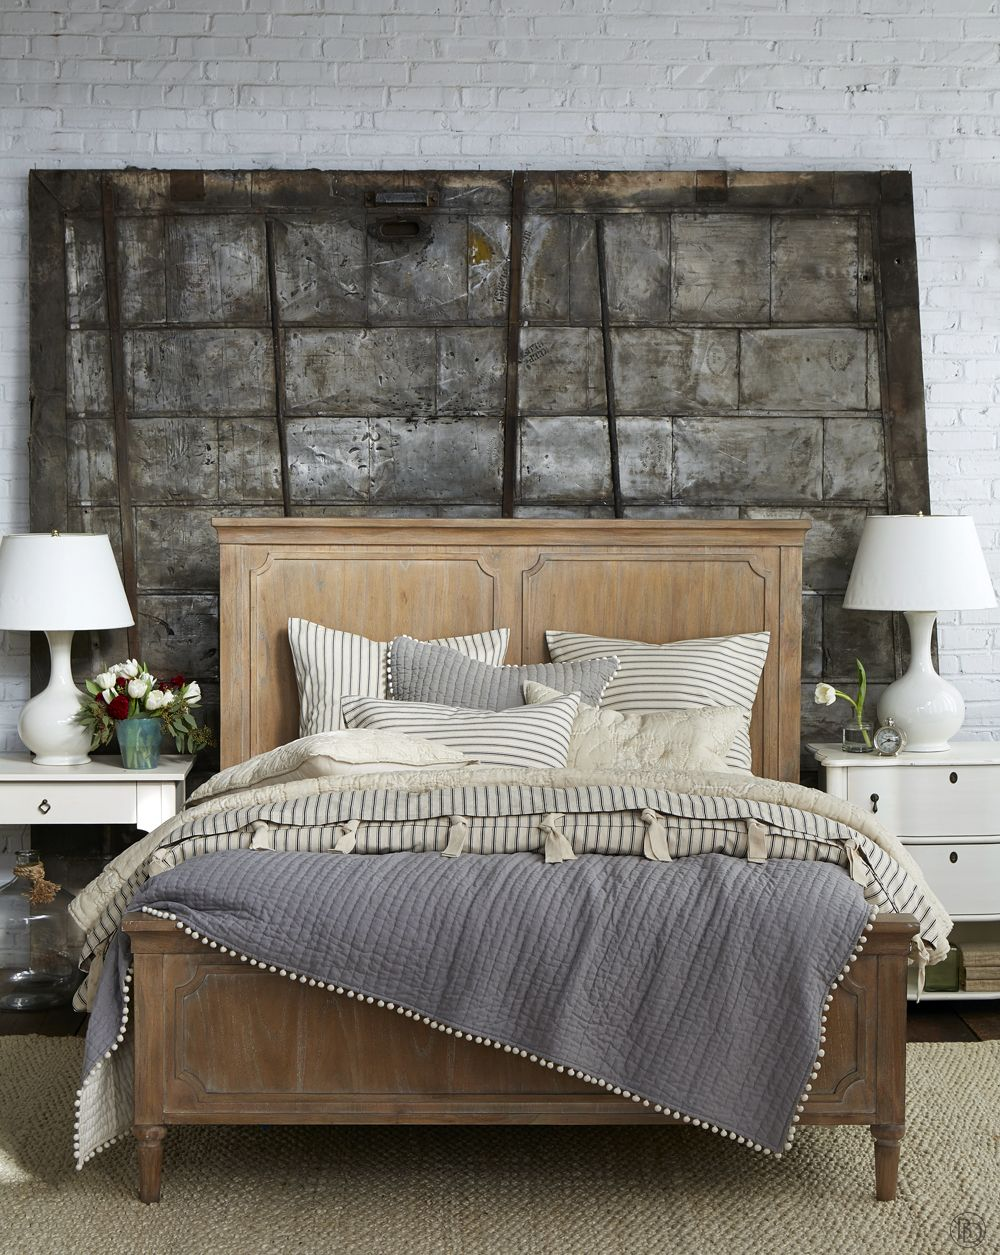 How To Mix And Match Patterned Bedding Loft Style